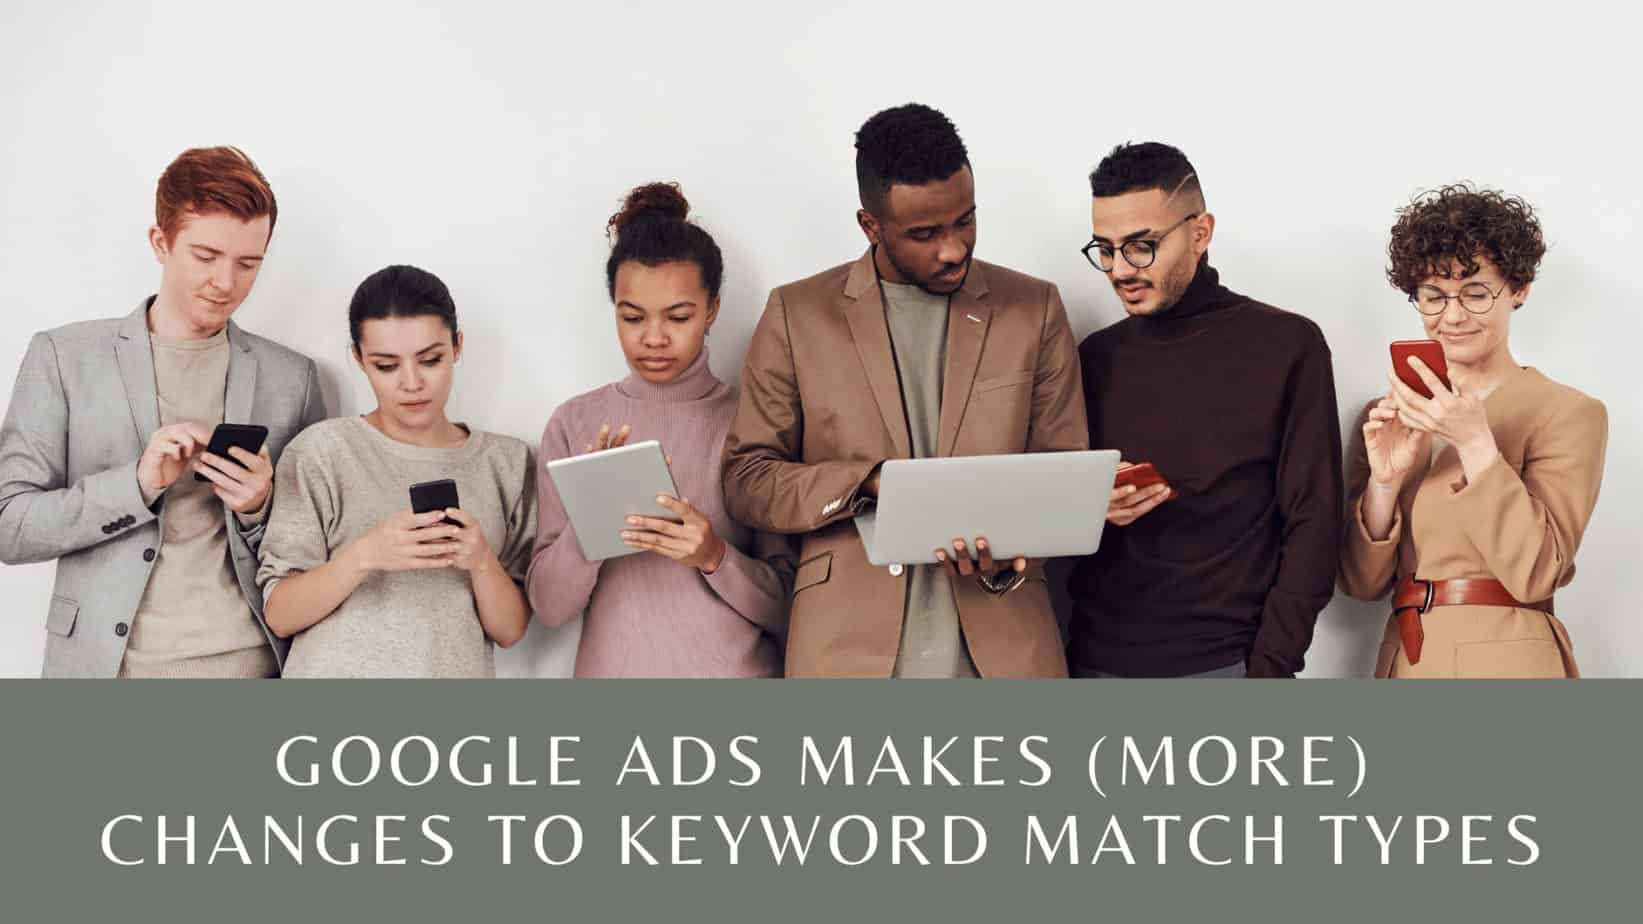 Google Ads Makes (More) Changes to Keyword Match Types